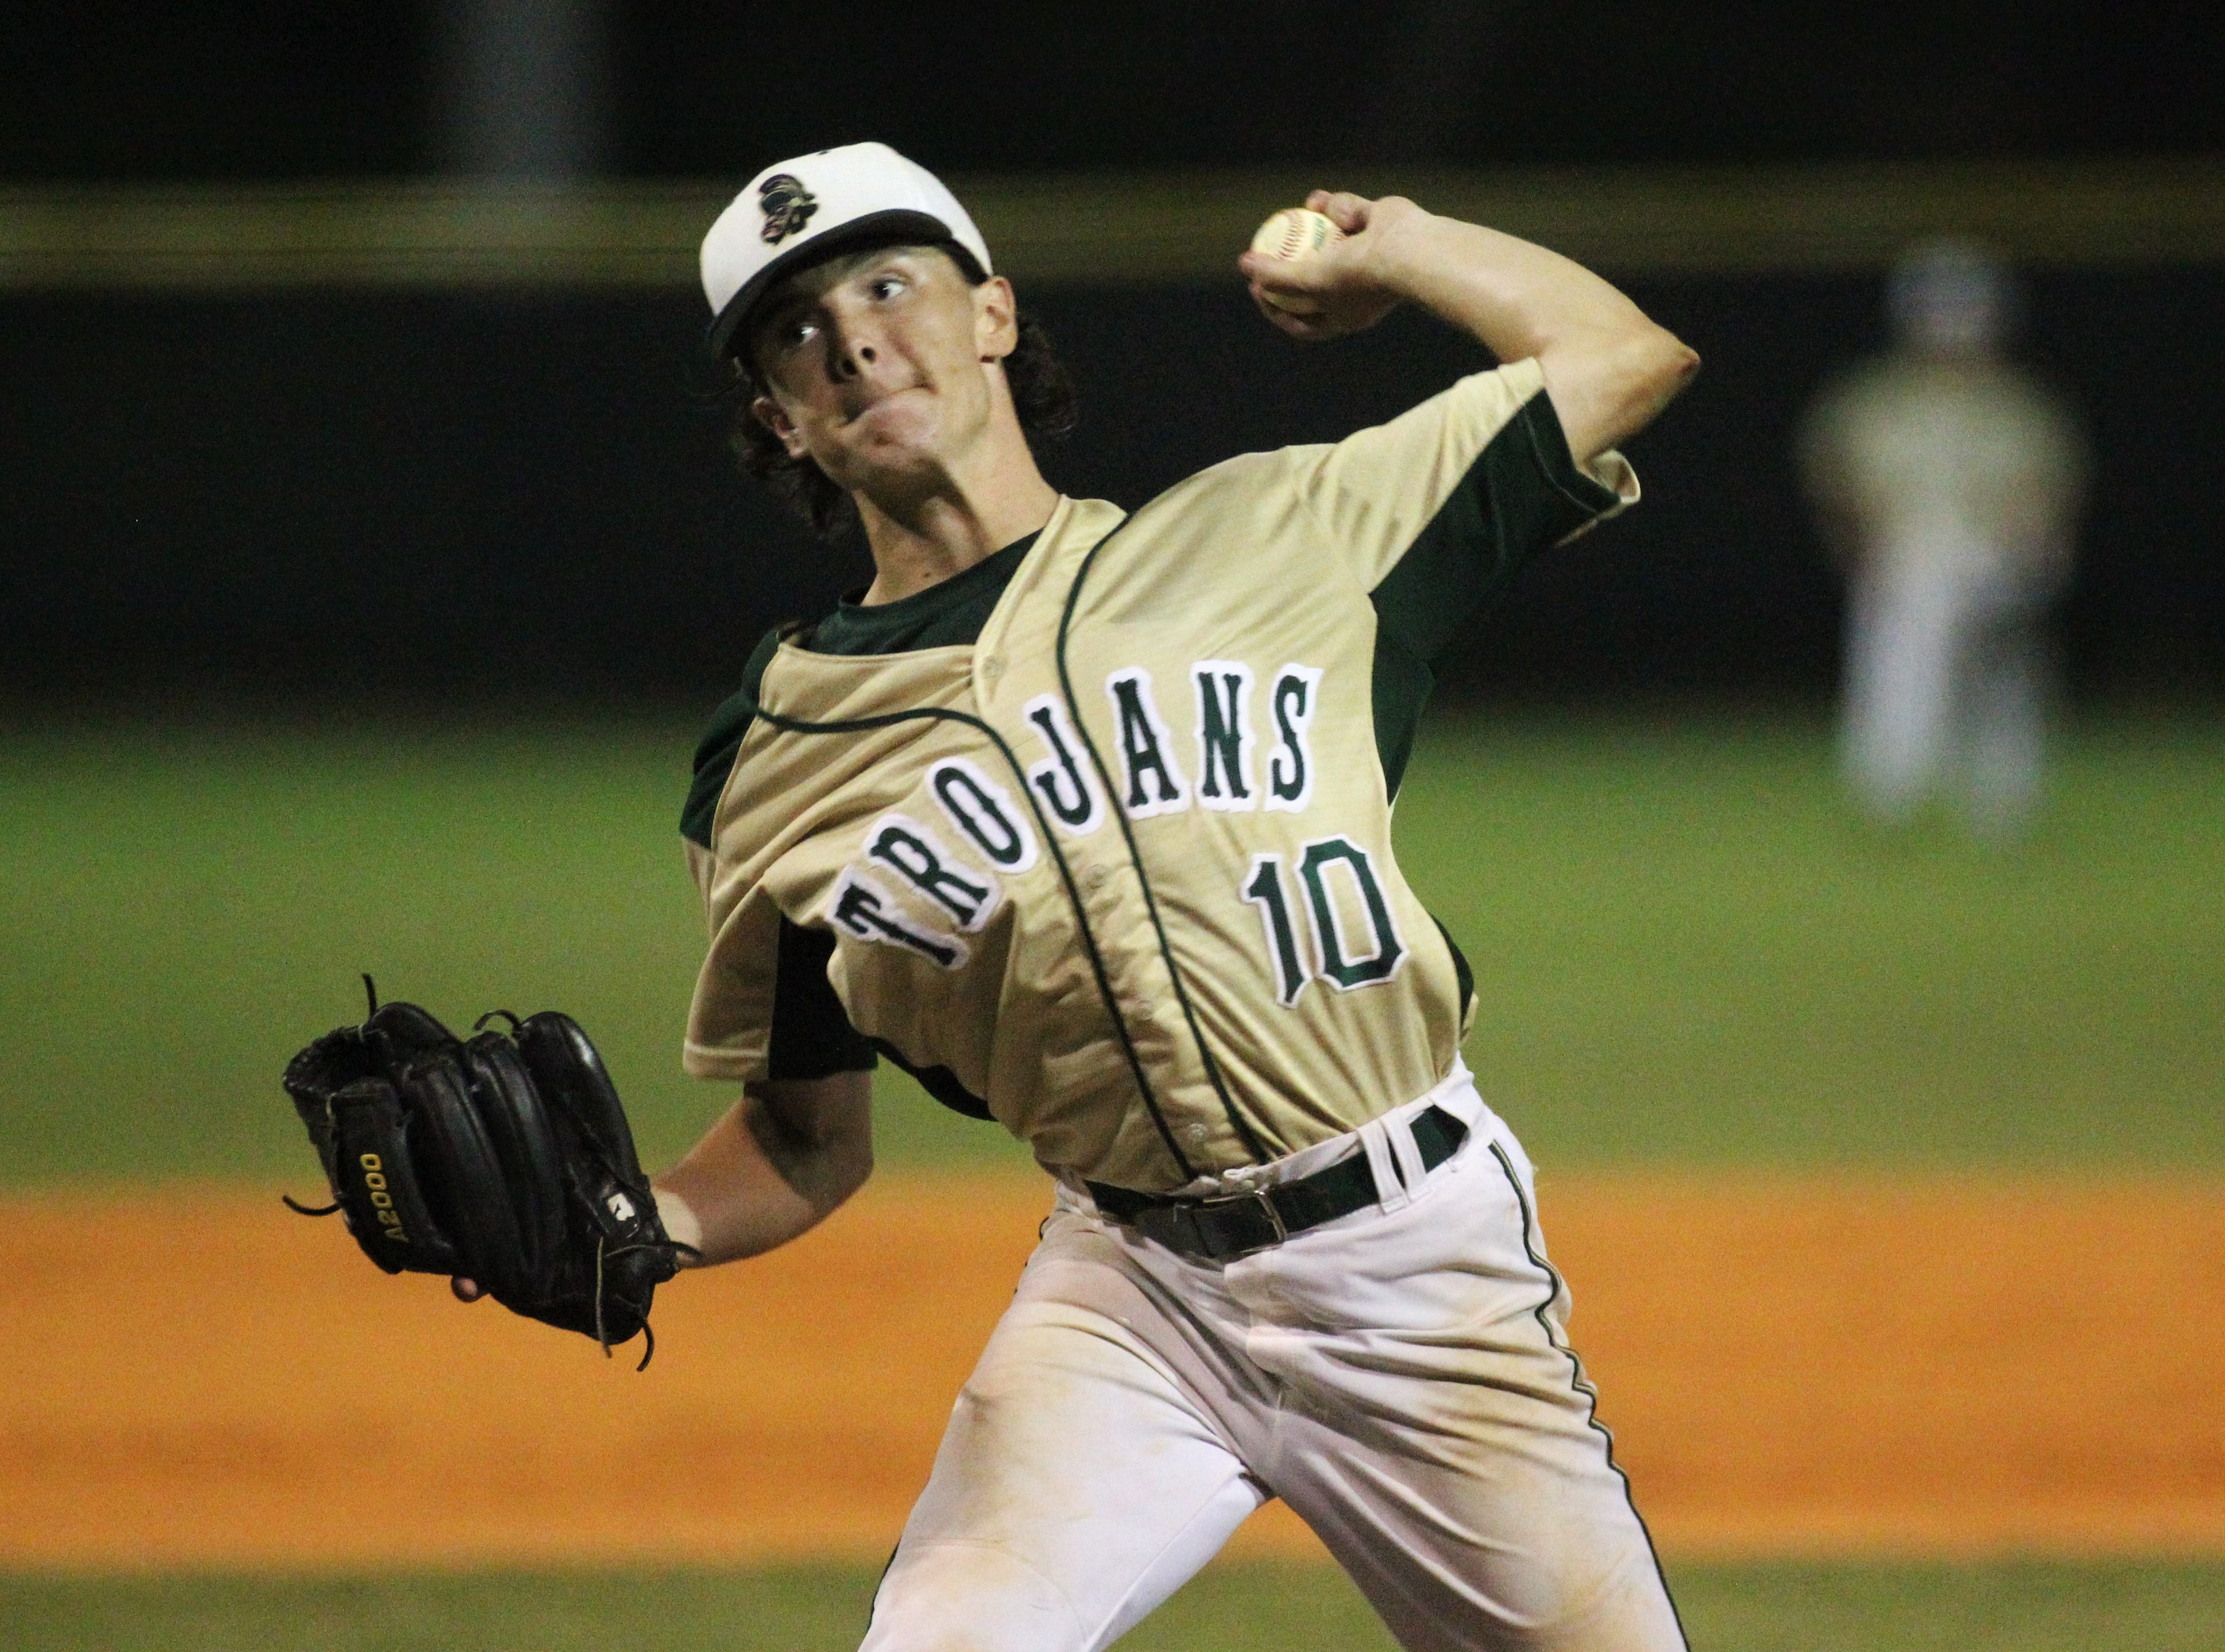 Lincoln senior Shawn Snyder pitches as Lincoln baseball beat Chiles 5-4  in 10 innings during a District 2-8A championship game on Thursday, May 9, 2019.